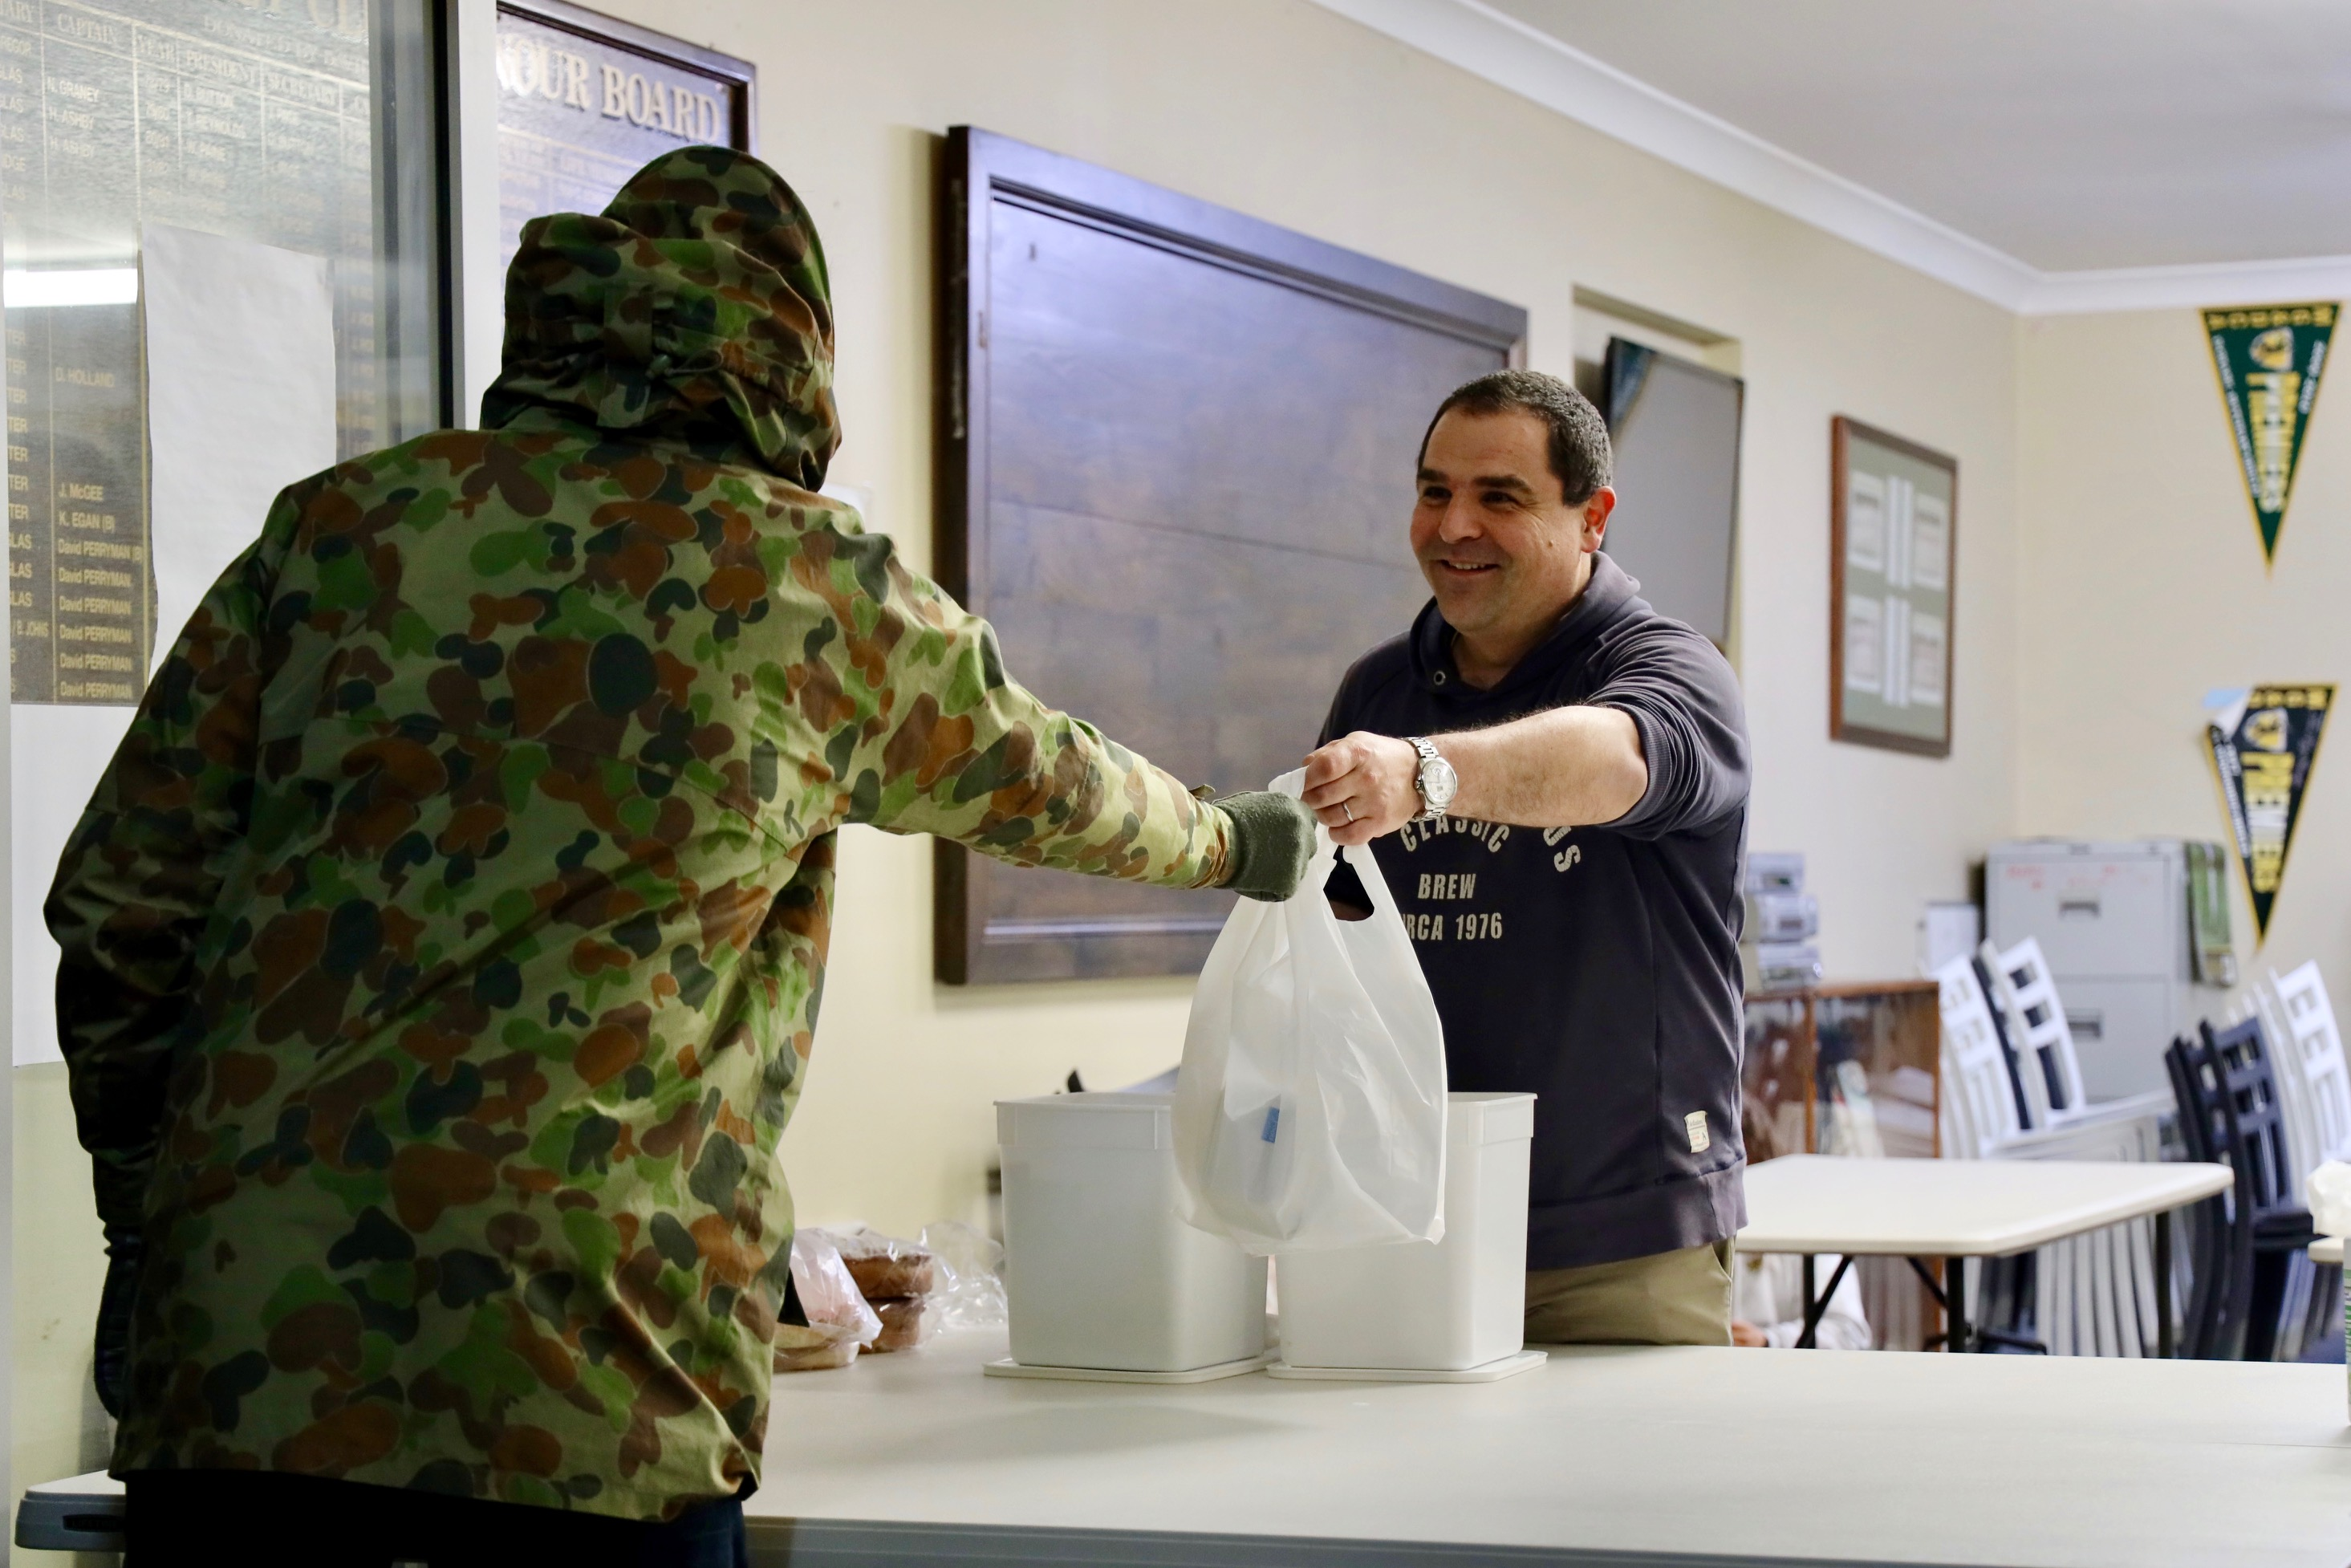 PASIN LENDS A HAND AT SUNSET COMMUNITY KITCHEN